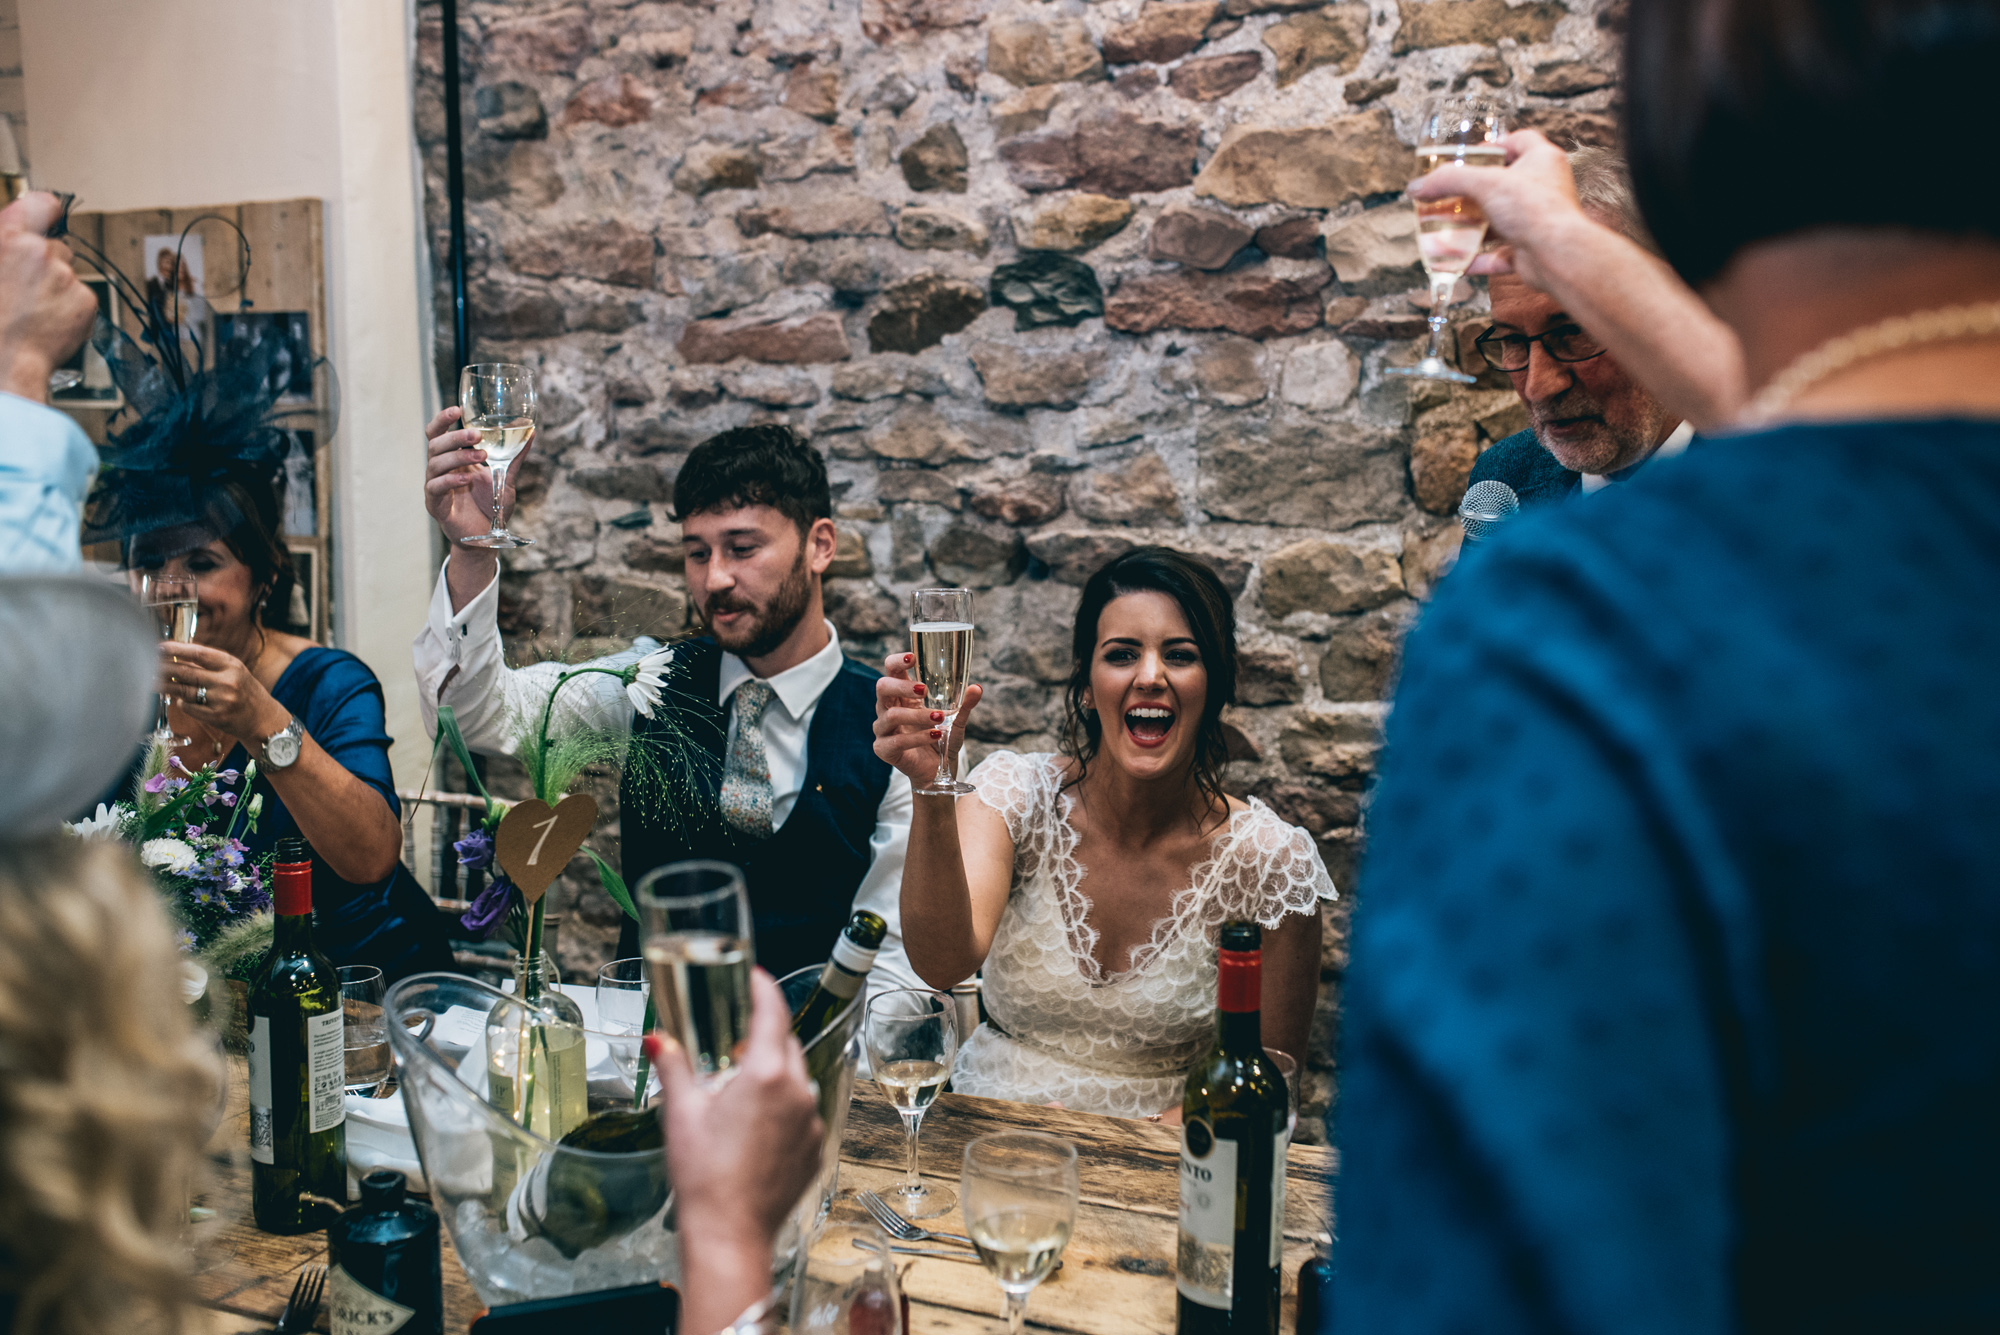 Kate-Beaumont-Sheffield-Lucy-Bohemian-Lace-Dress-Barn-Wedding-Cumbria-39.jpg